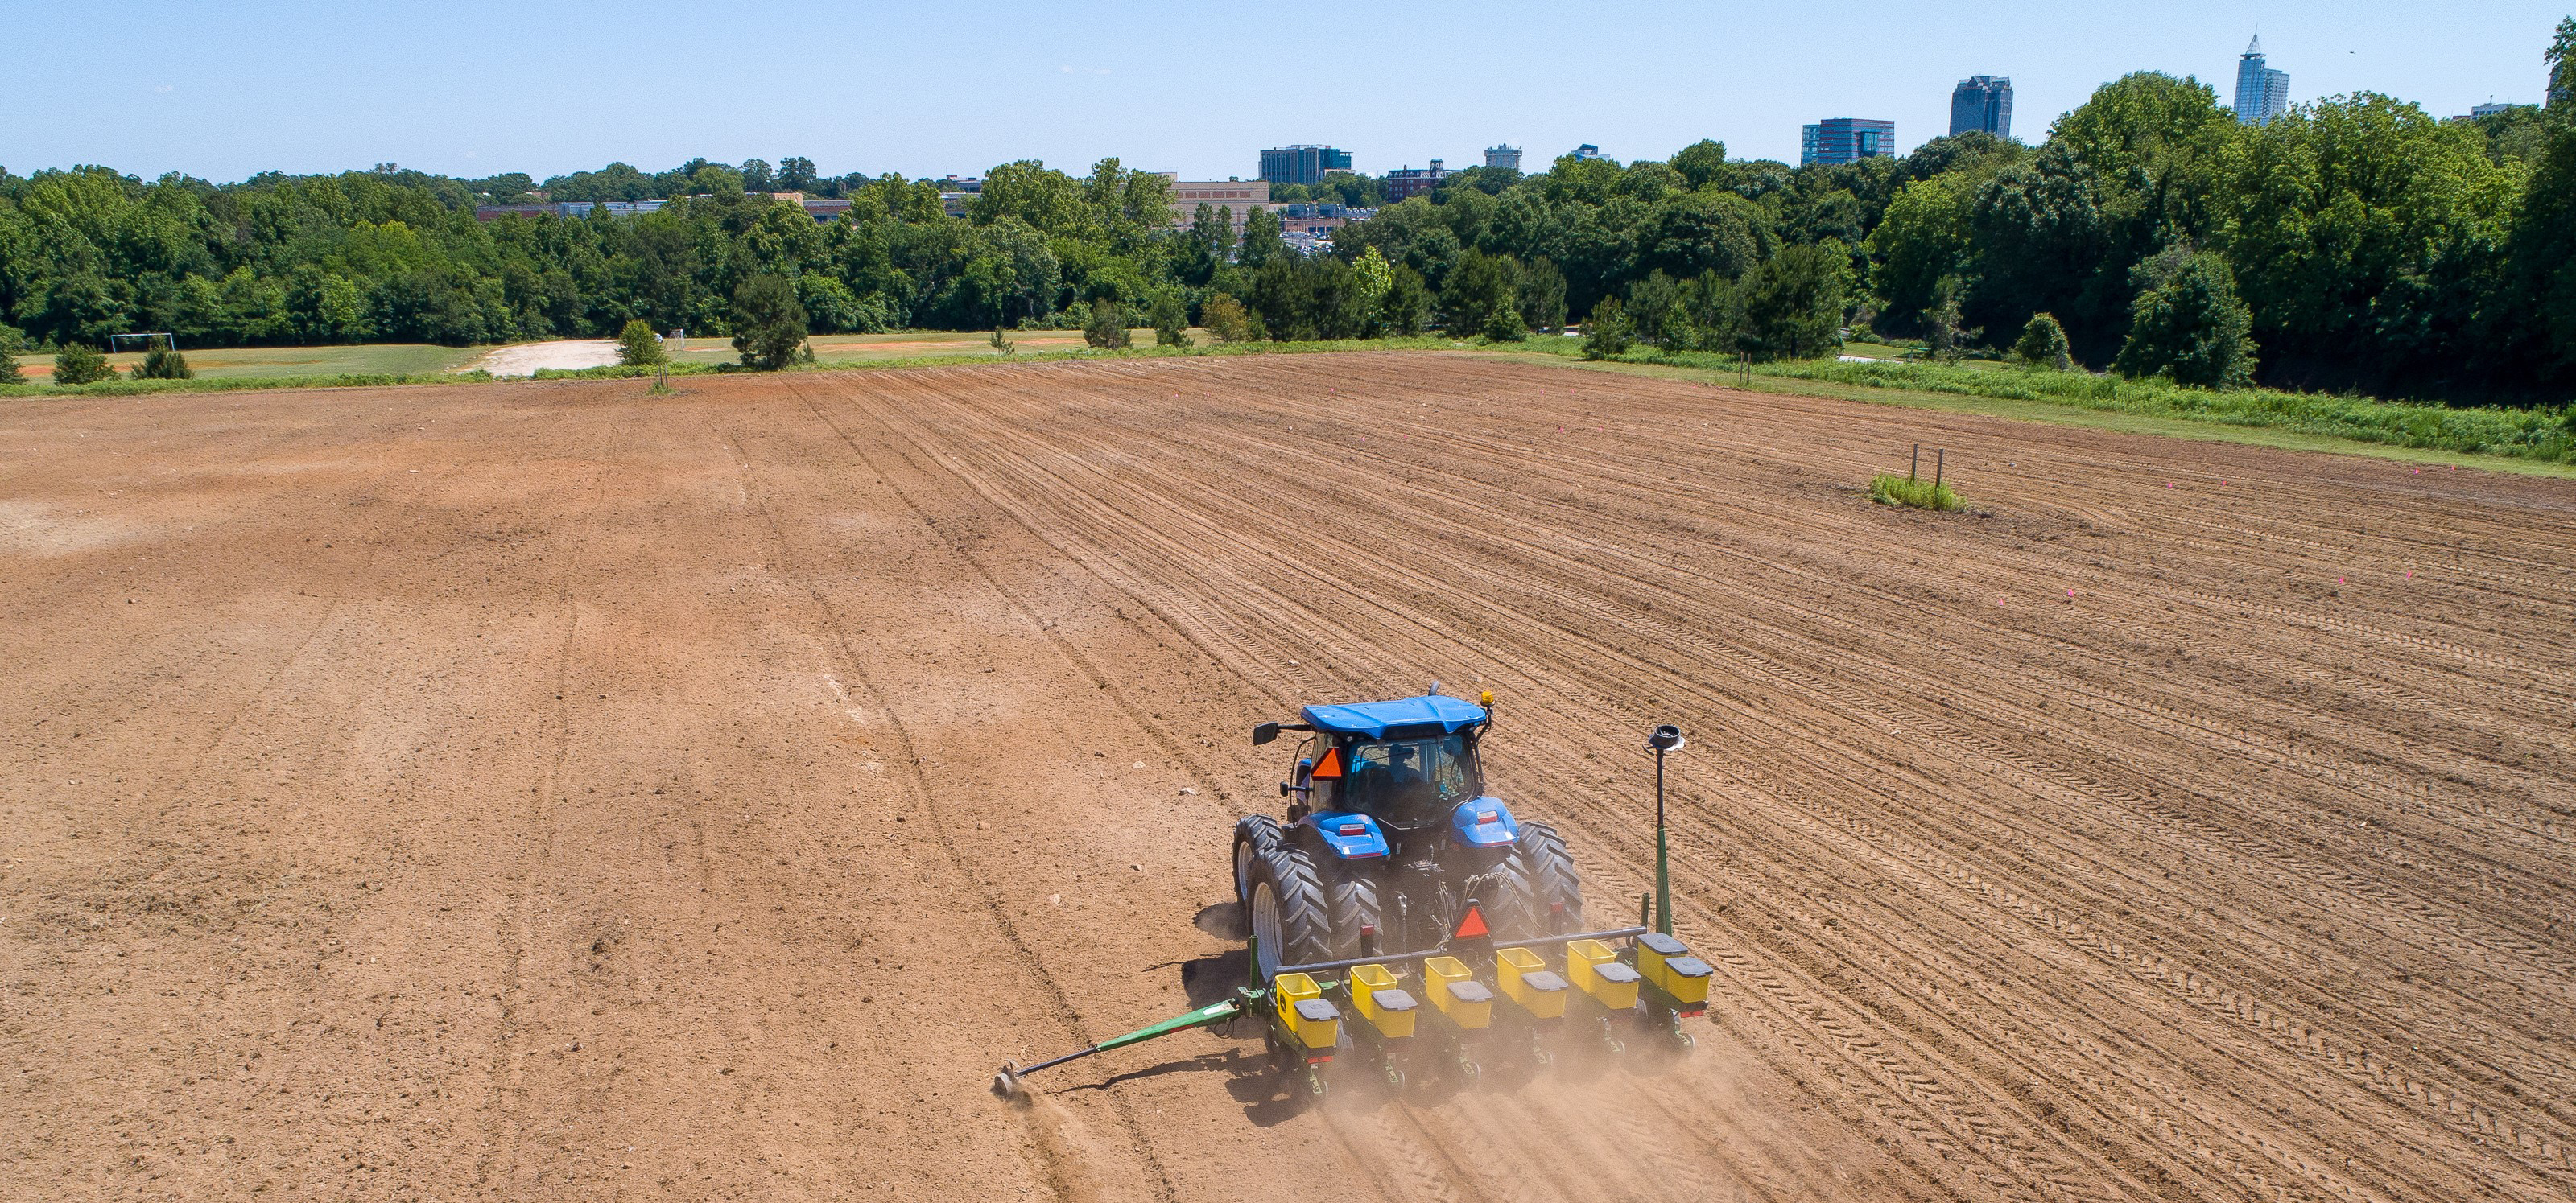 Aerial view of a tractor planting the sunflower field at Dix Park with the city skyline in the distance